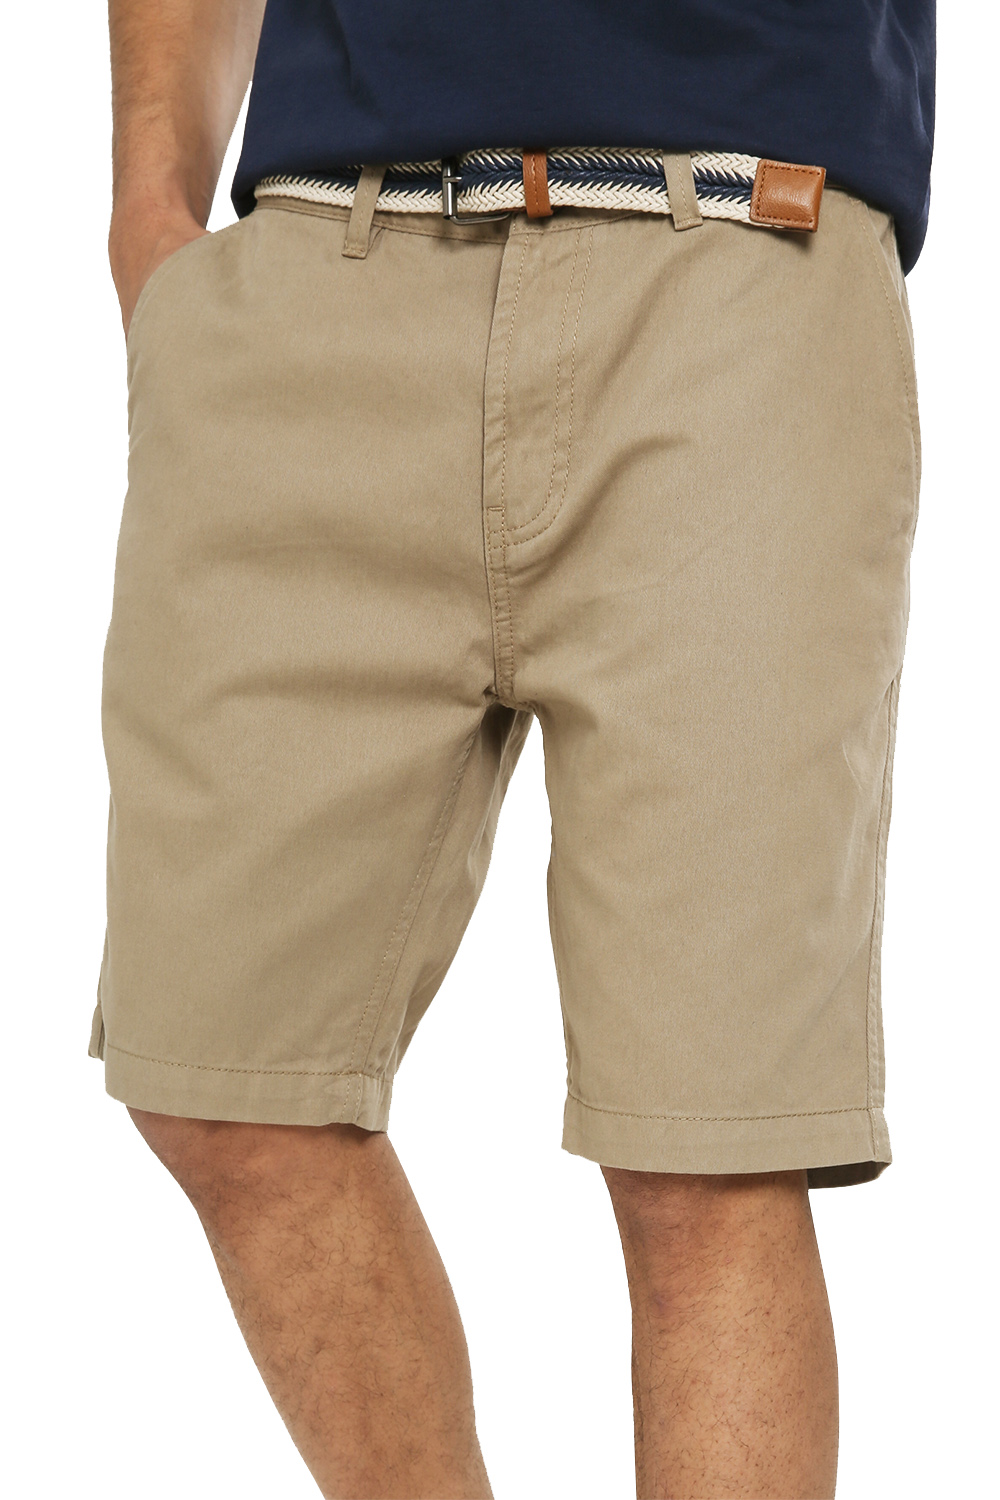 Threadbare-Mens-Slim-Fit-Belted-Chino-Shorts-Summer-Casual-Cotton-Smart-Bottoms thumbnail 26